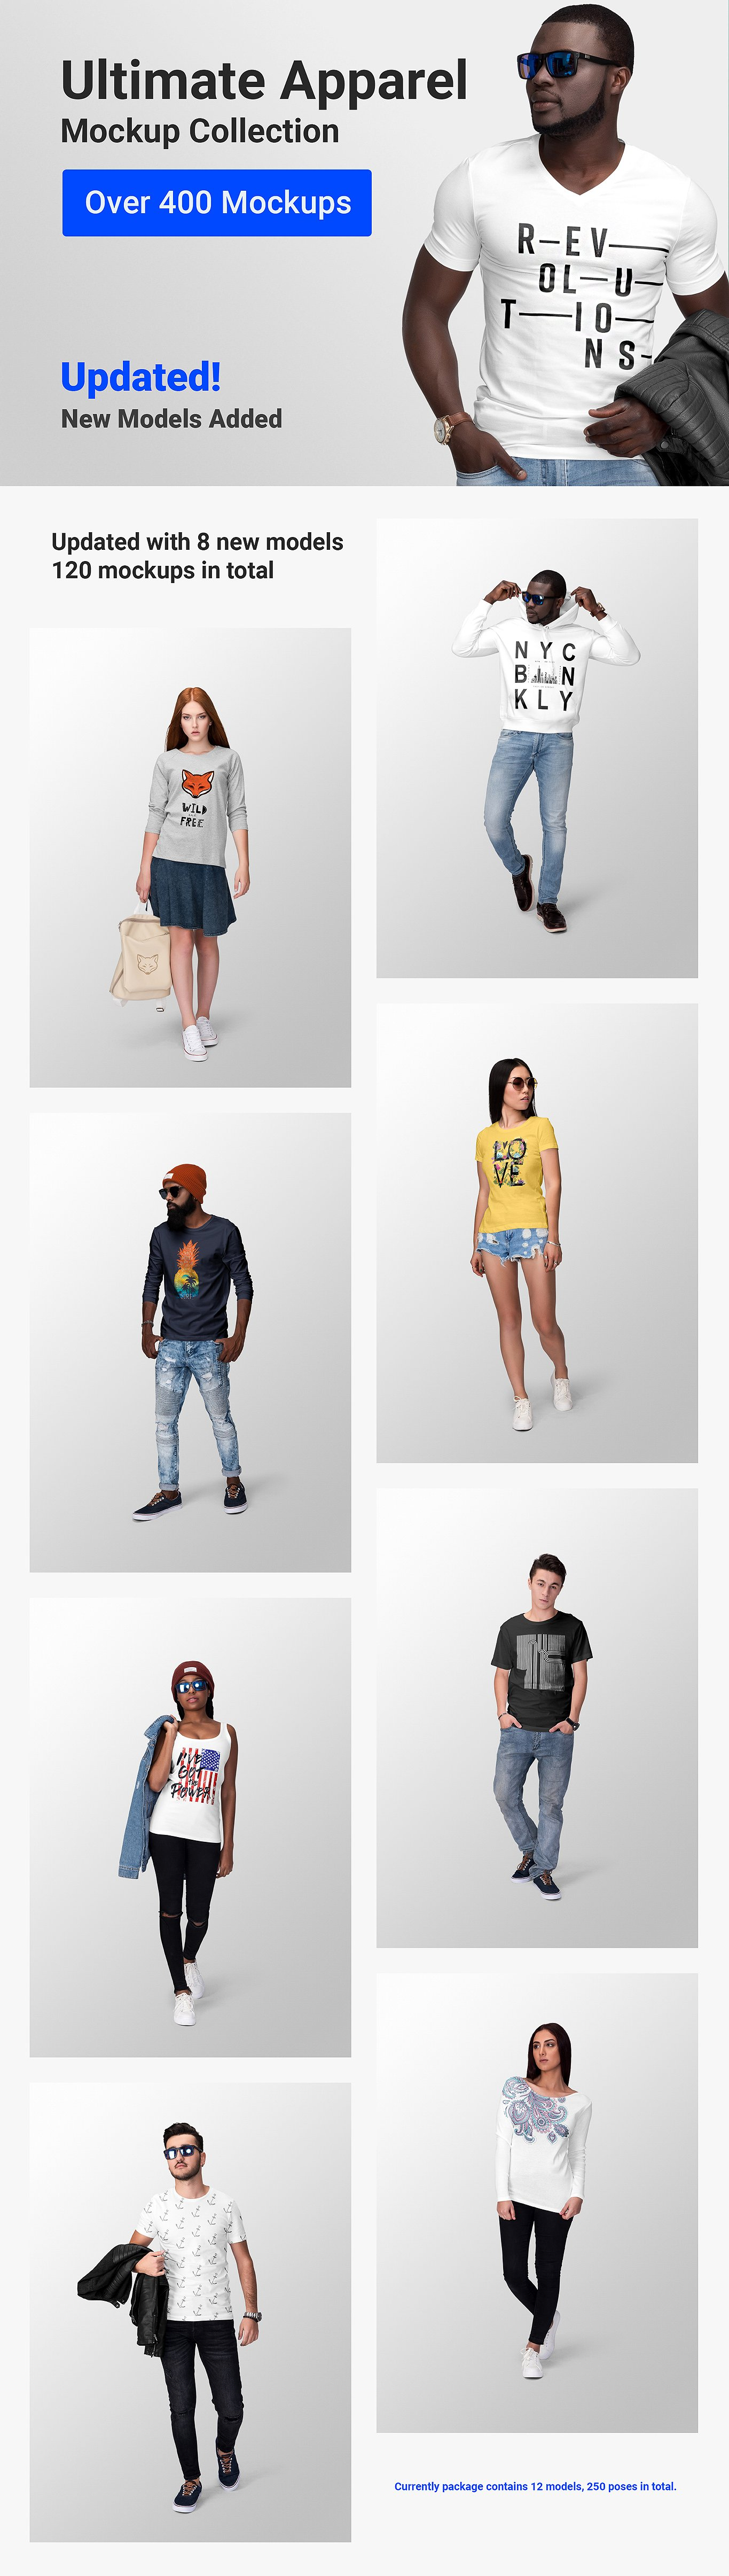 01-ultimate-apparel-mockup-collection-update-